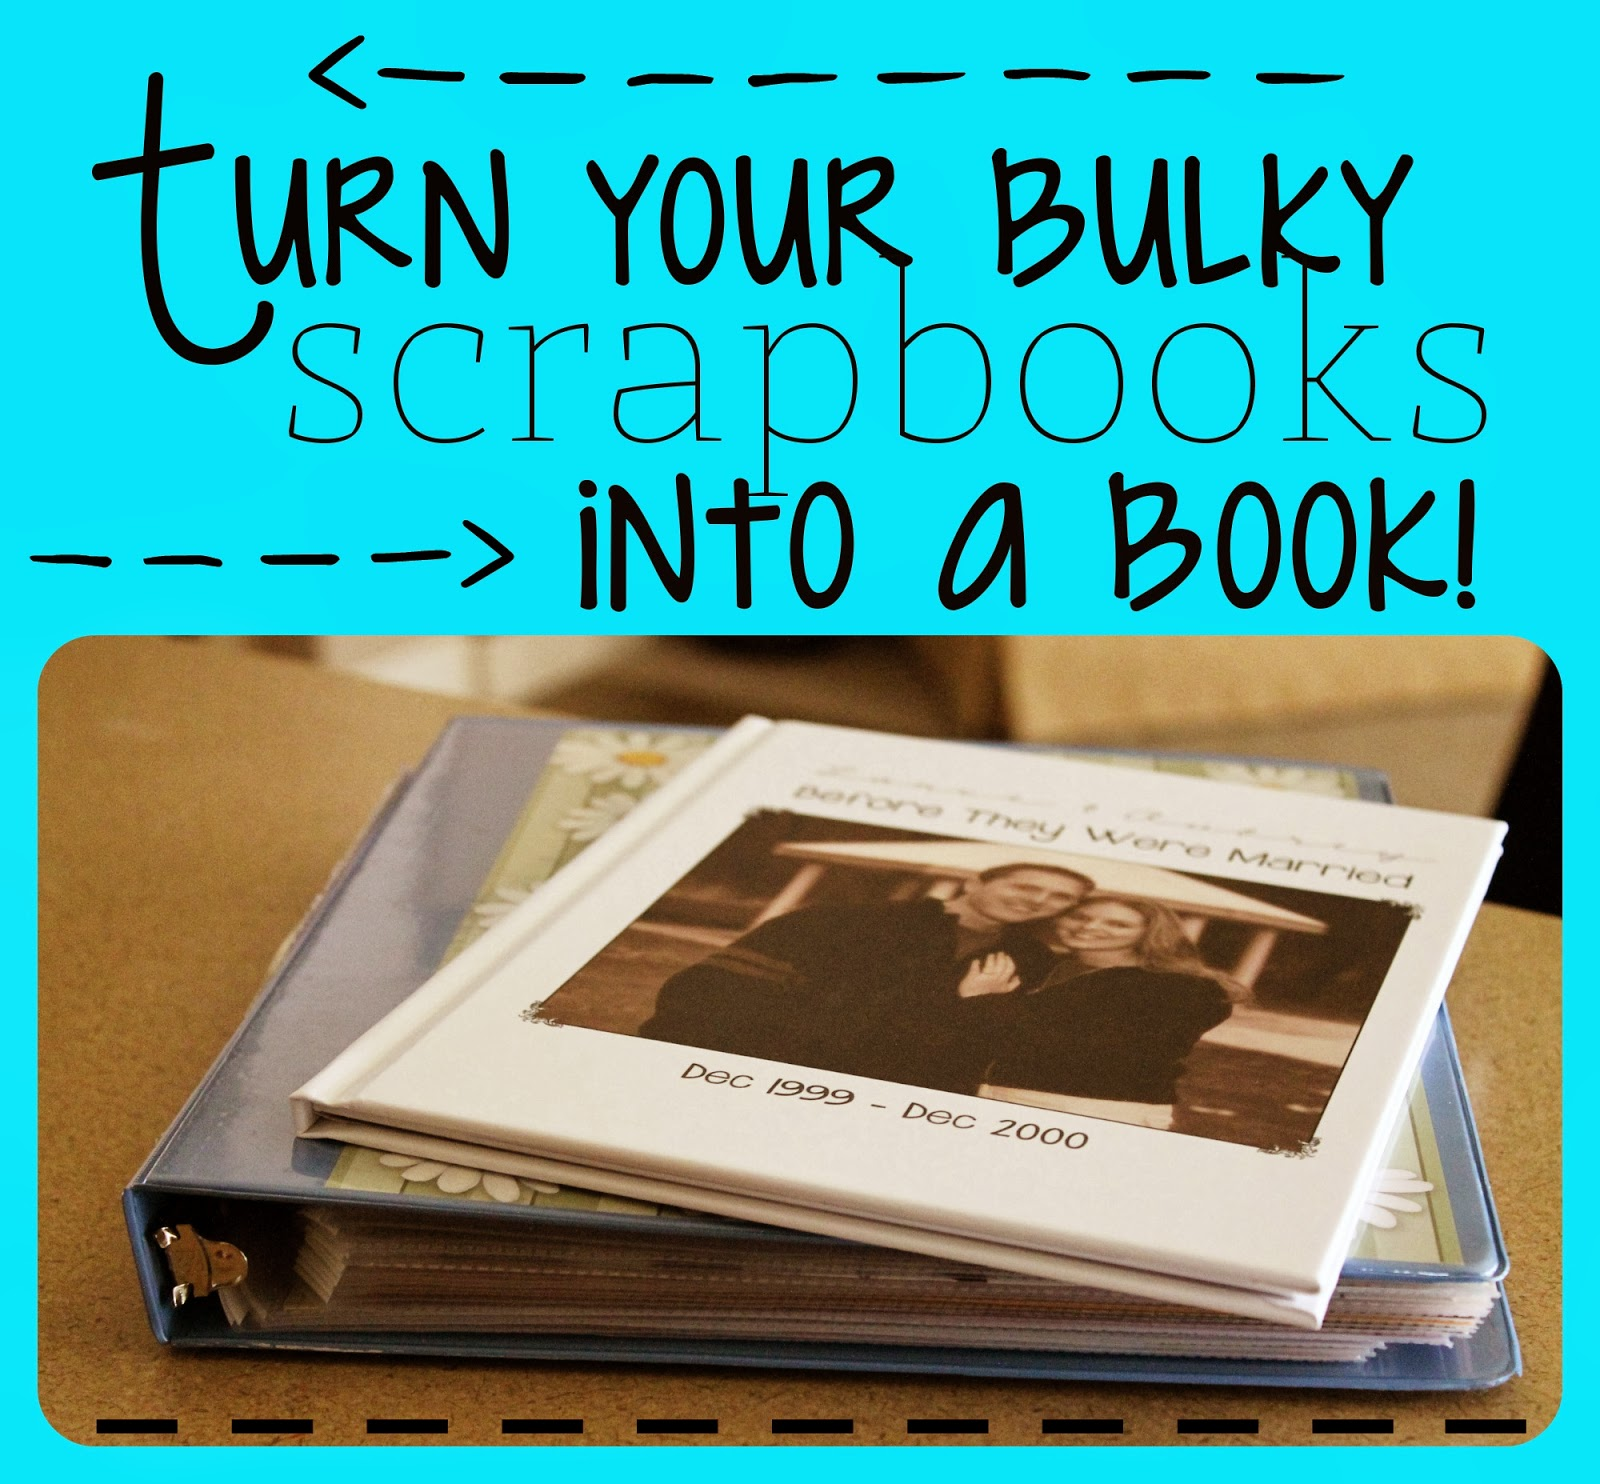 scrapbook into a book, photo album ideas, preserve your memories, scrapbook ideas